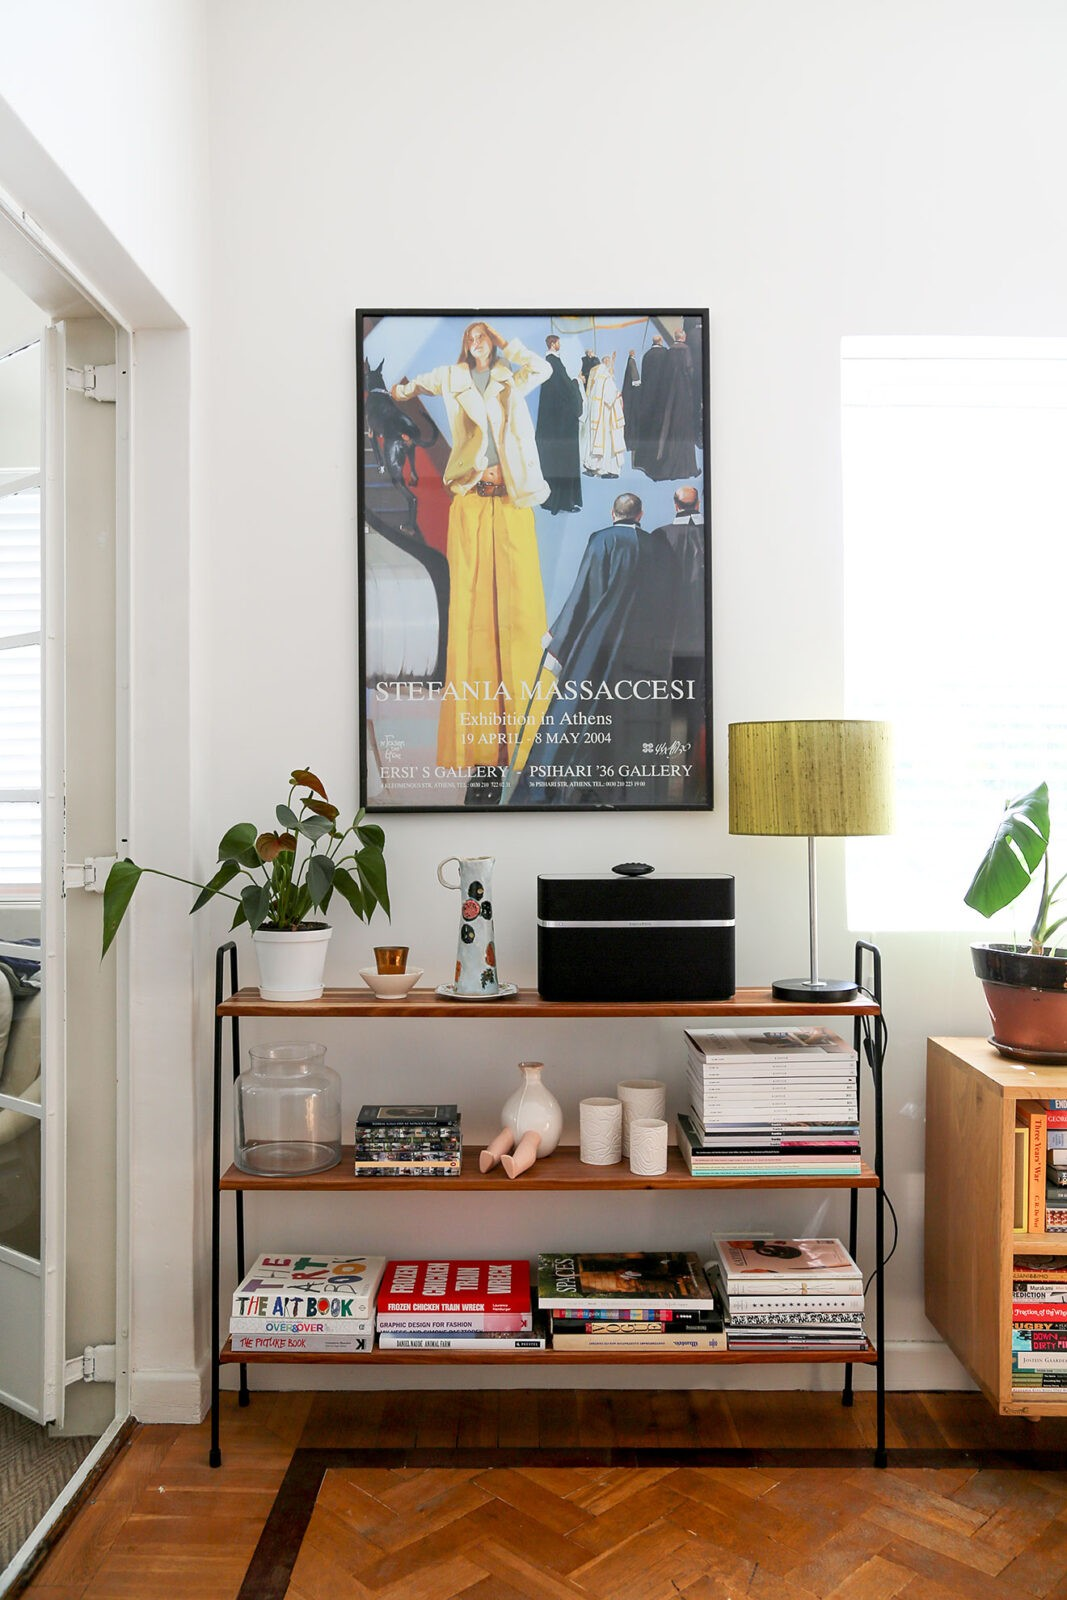 These Walls // Miss Moss shares bits of her apartment